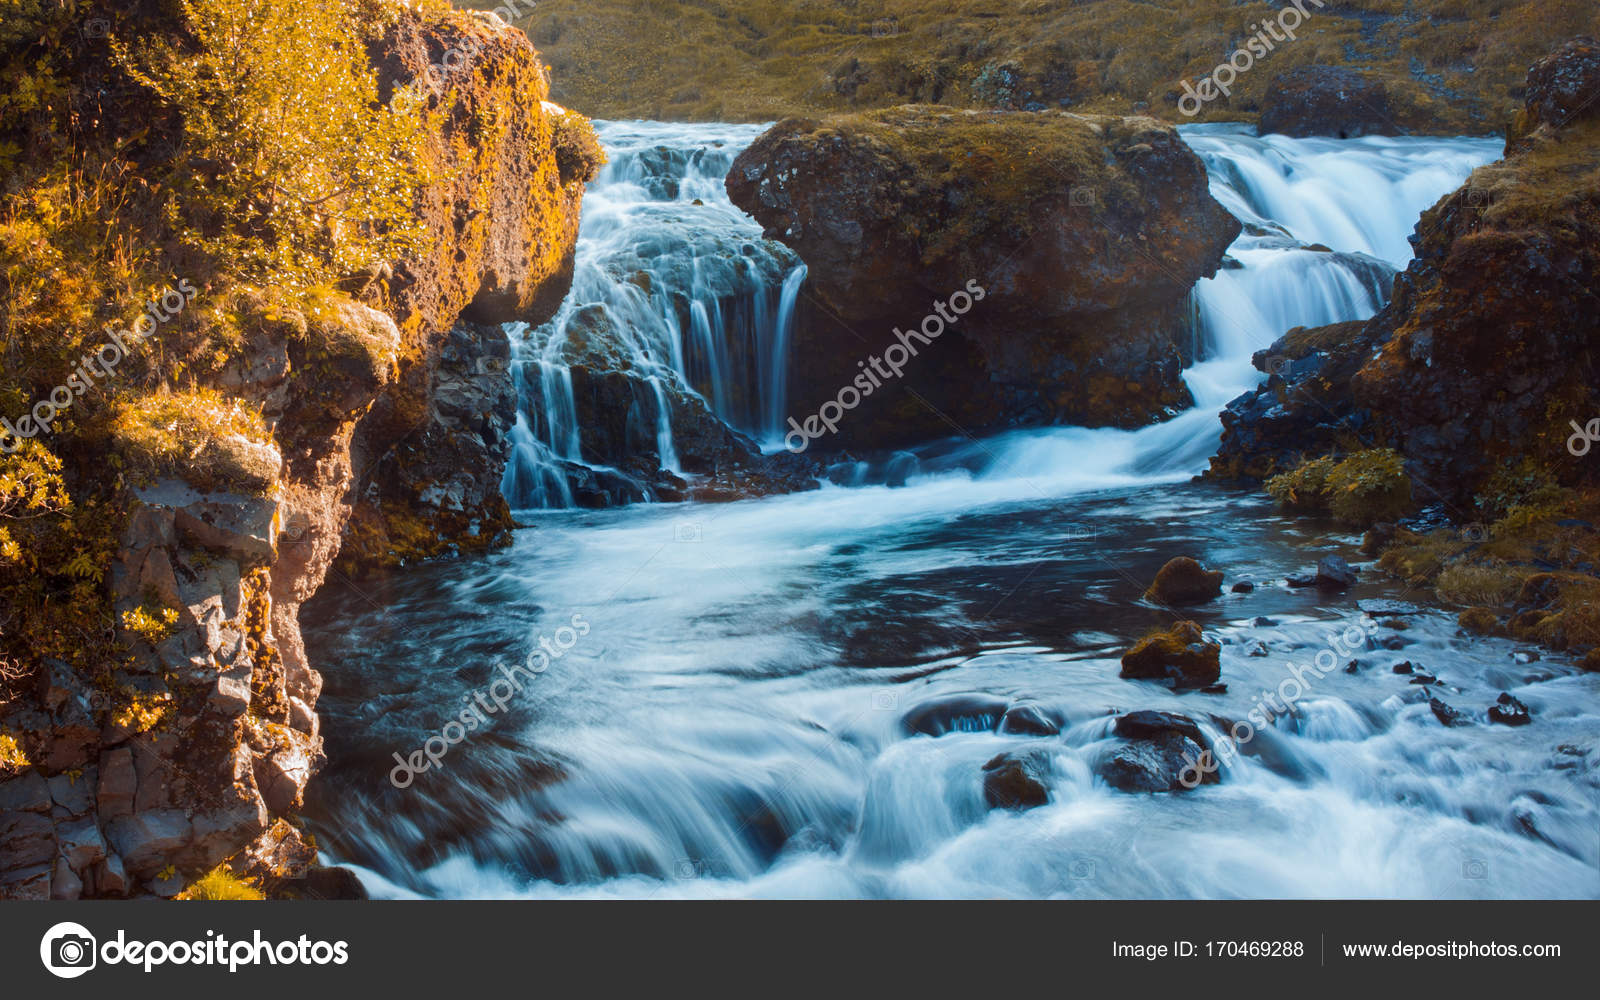 Iceland Mountain River With Rapids And Waterfalls Beautiful Scenery Stock Photo